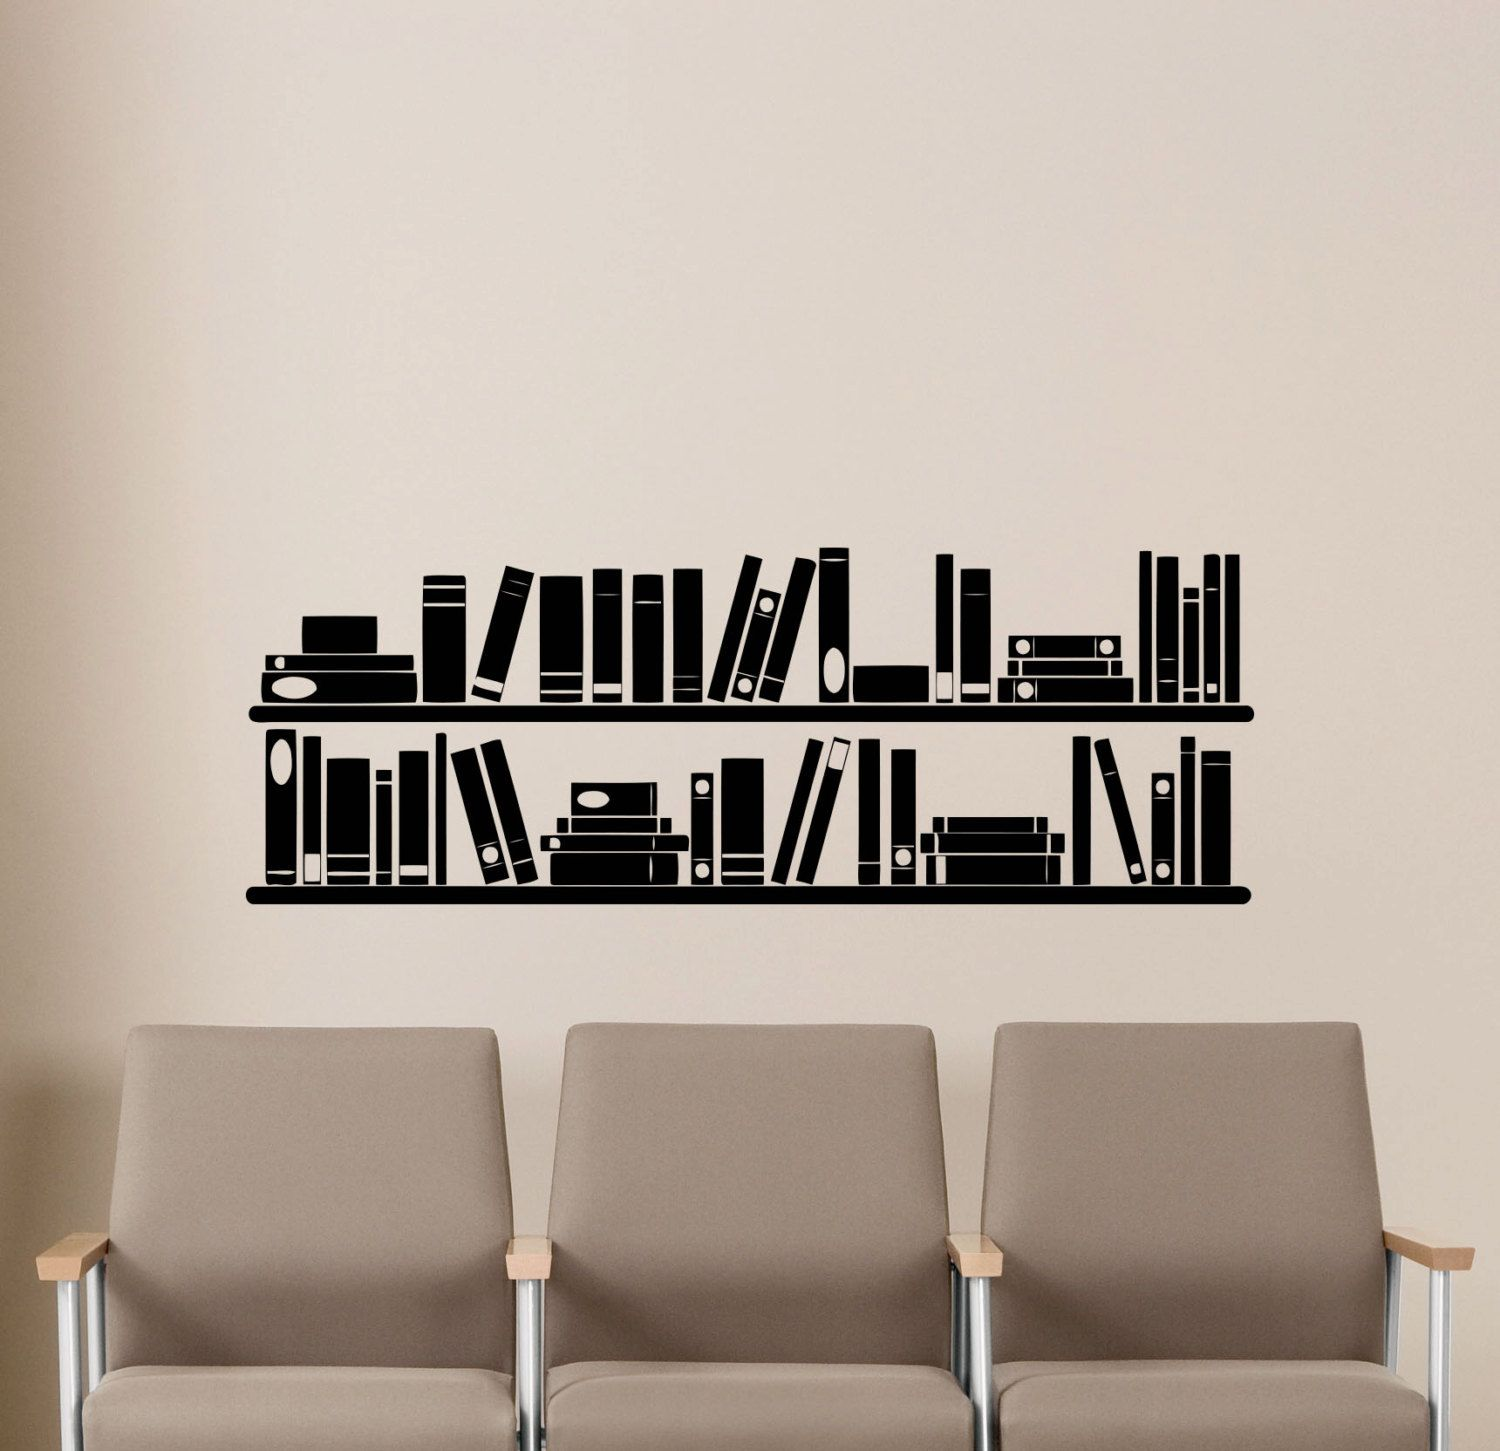 About My Wall Stickers Quality Vinyl Stickers For Any Interior - Custom vinyl wall decals removal options